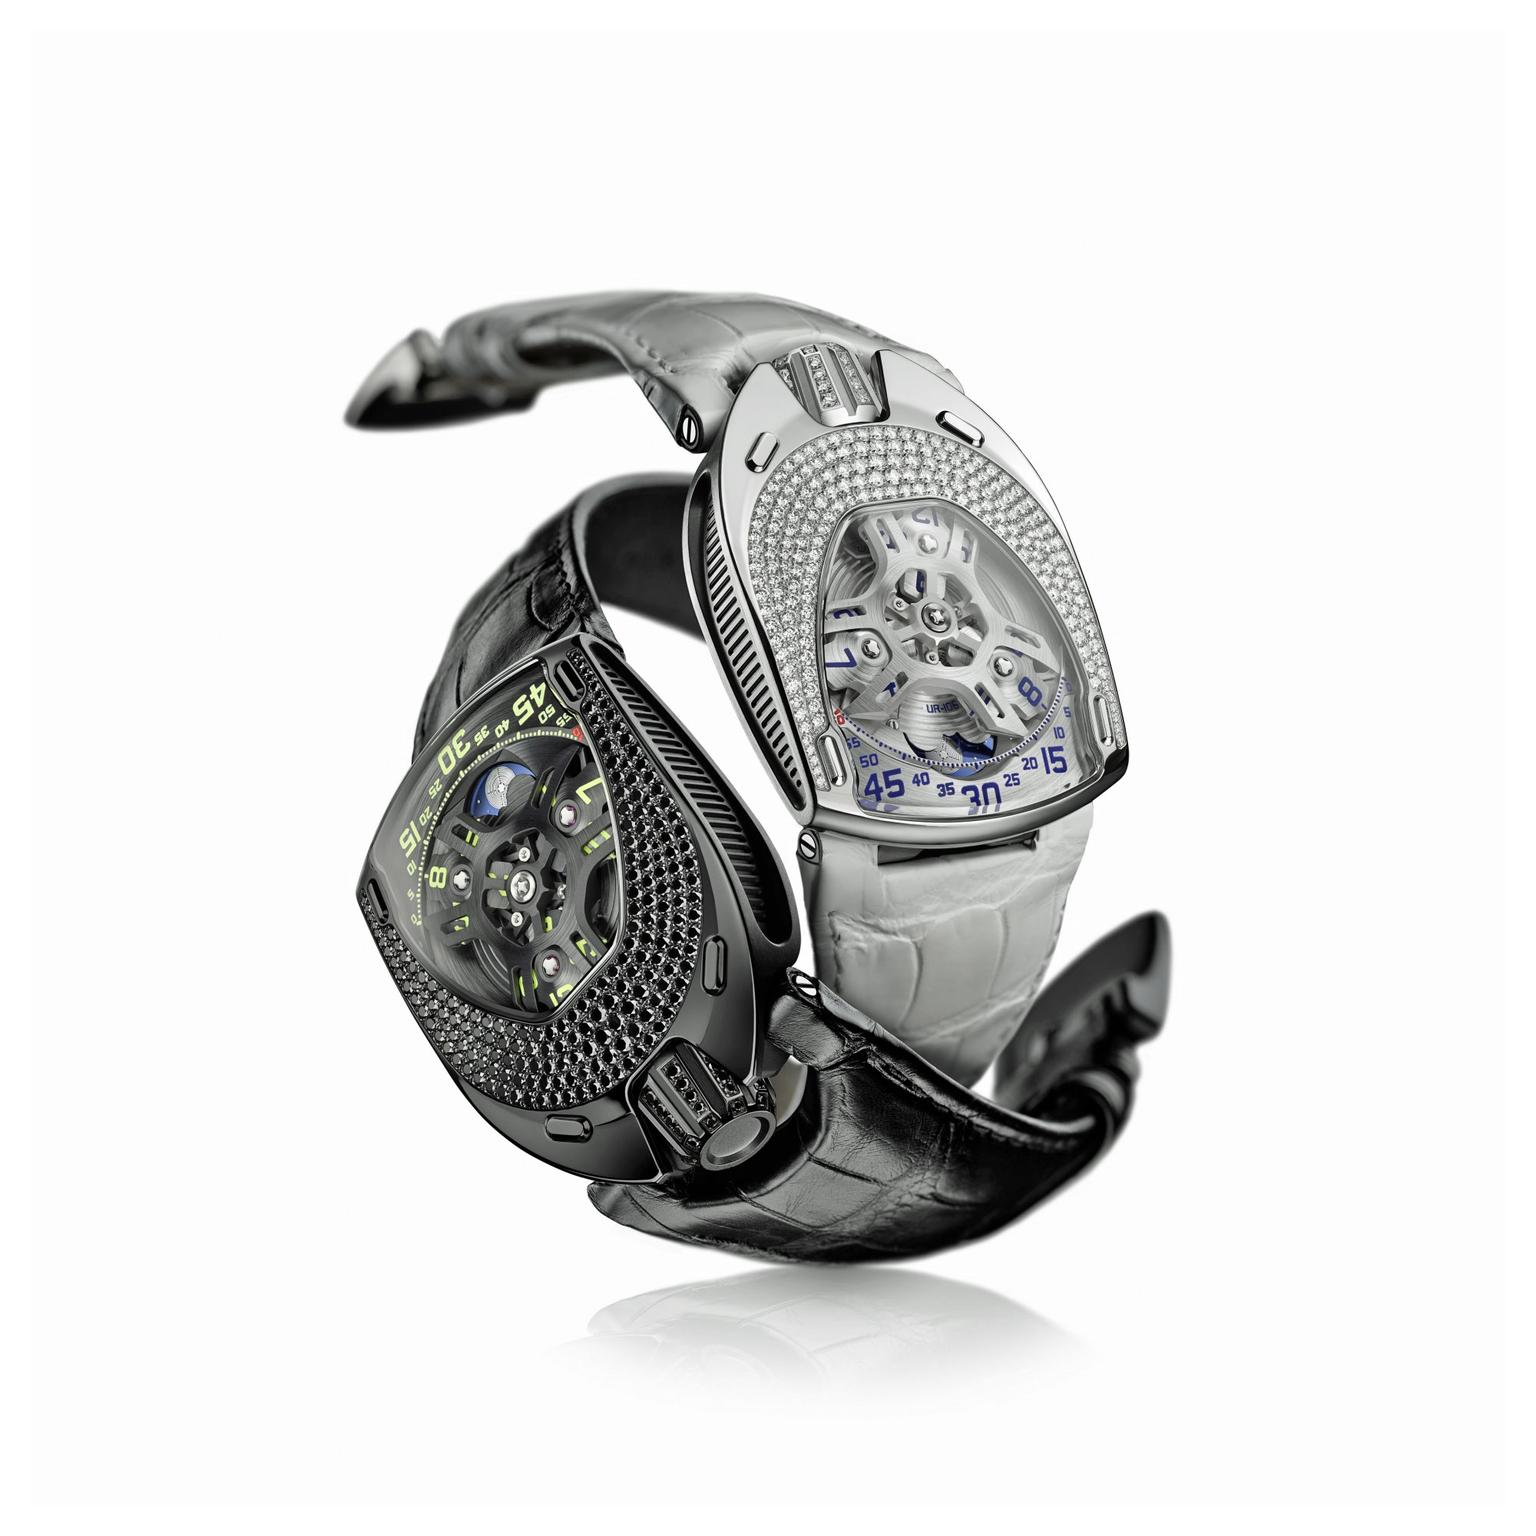 Urwerk UR-106 Lotus and Black watches